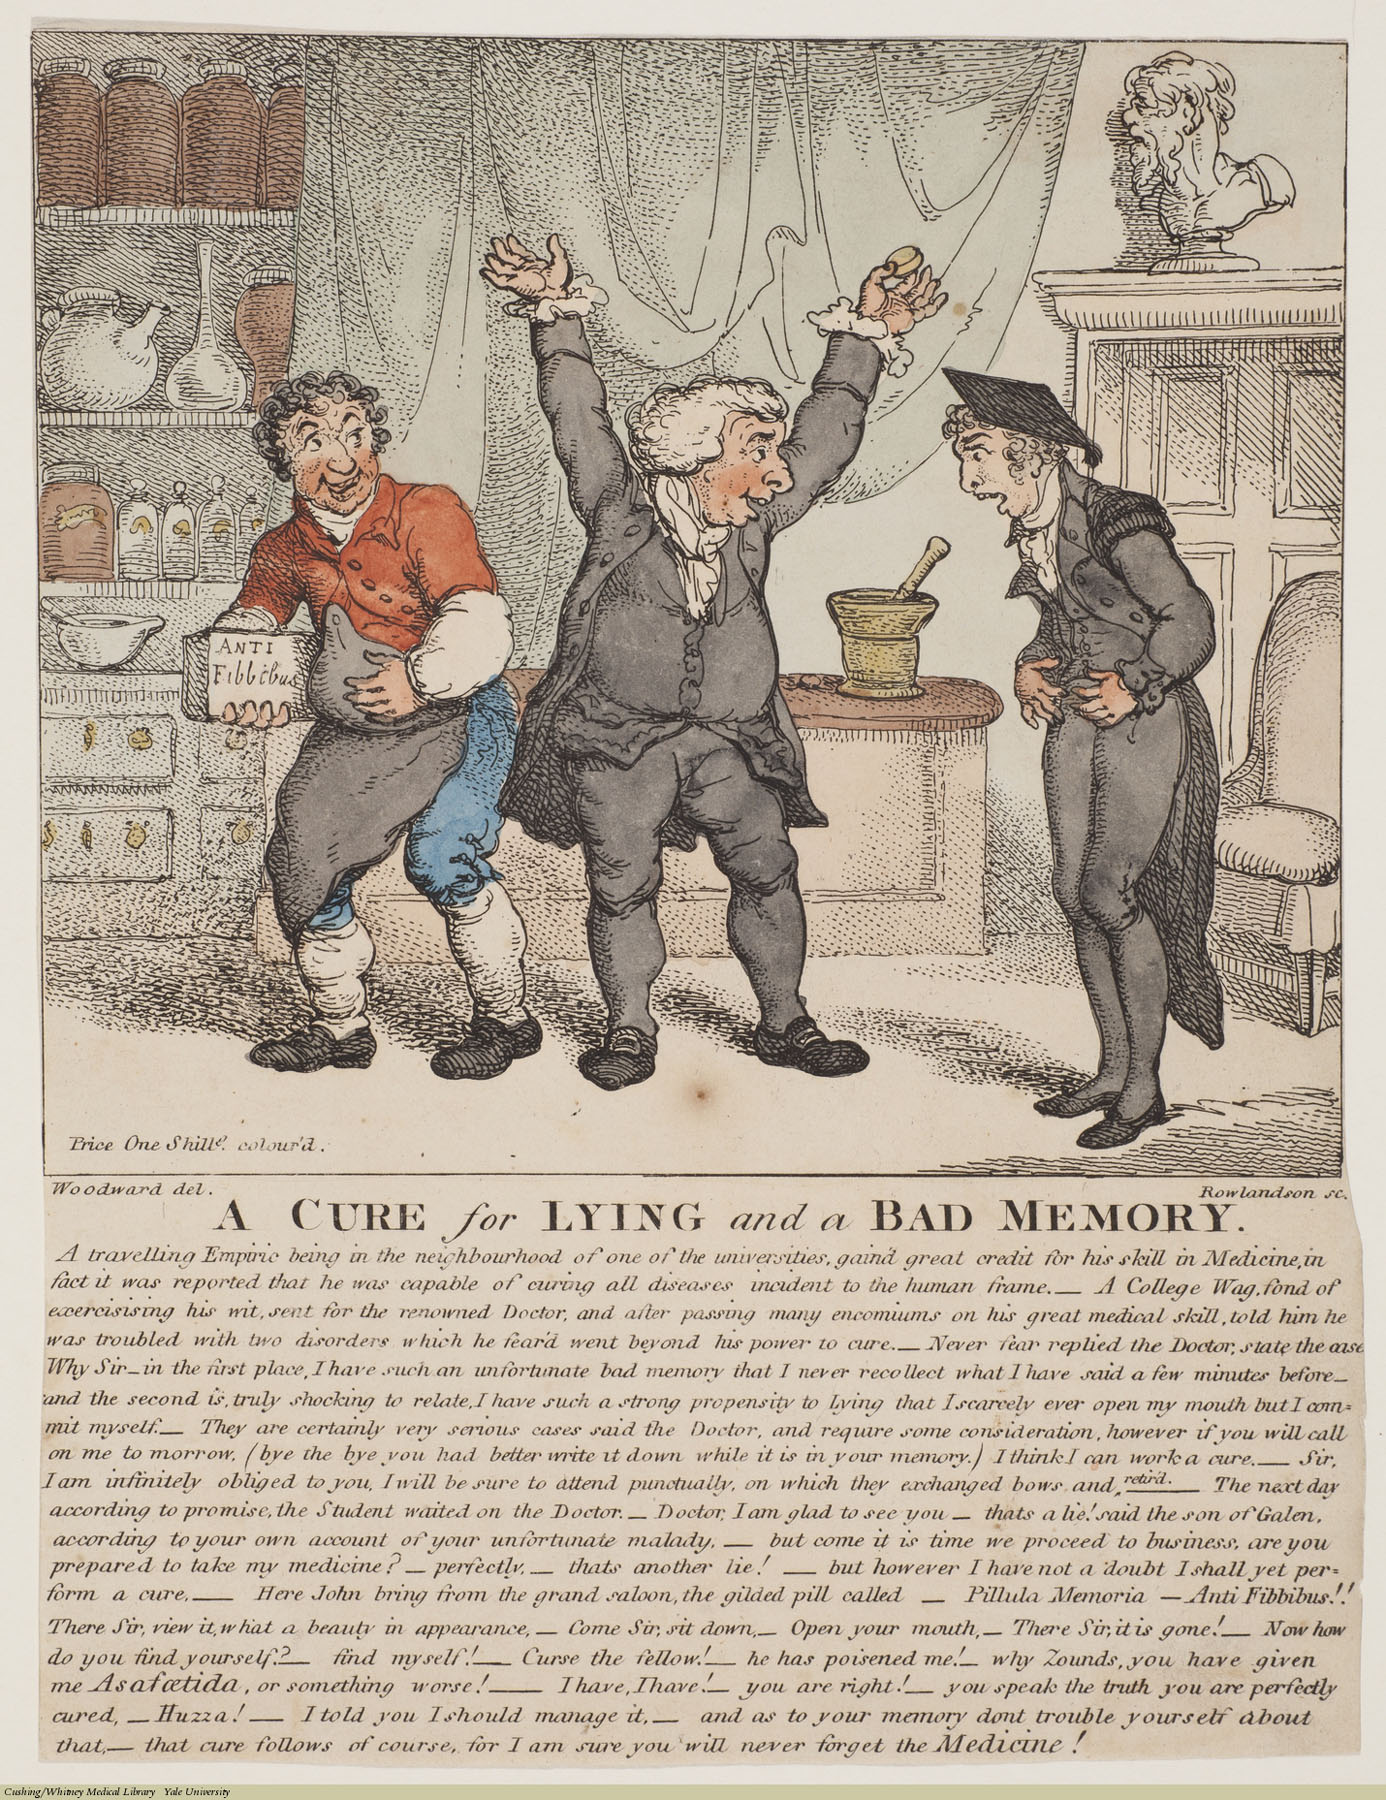 A Cure for Lying and a Bad Memory. Thomas Rowlandson, Etching coloured, 1807. Subject: Pharmacy, Medicine.